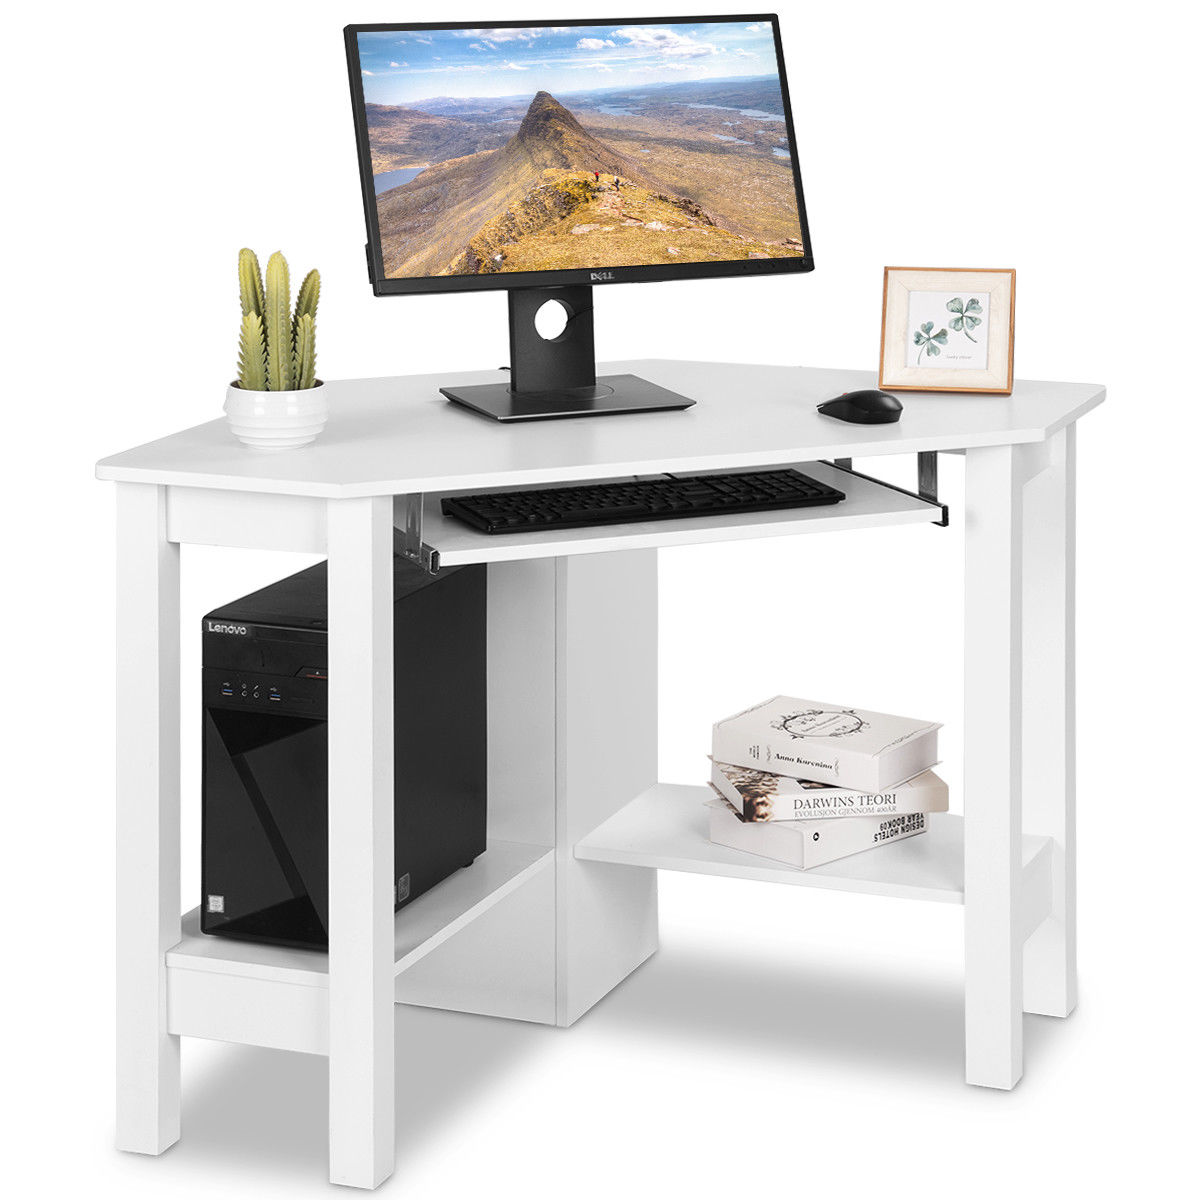 Costway Wooden Corner Desk With Drawer Computer PC Table Study Office Room  White - Walmart.com